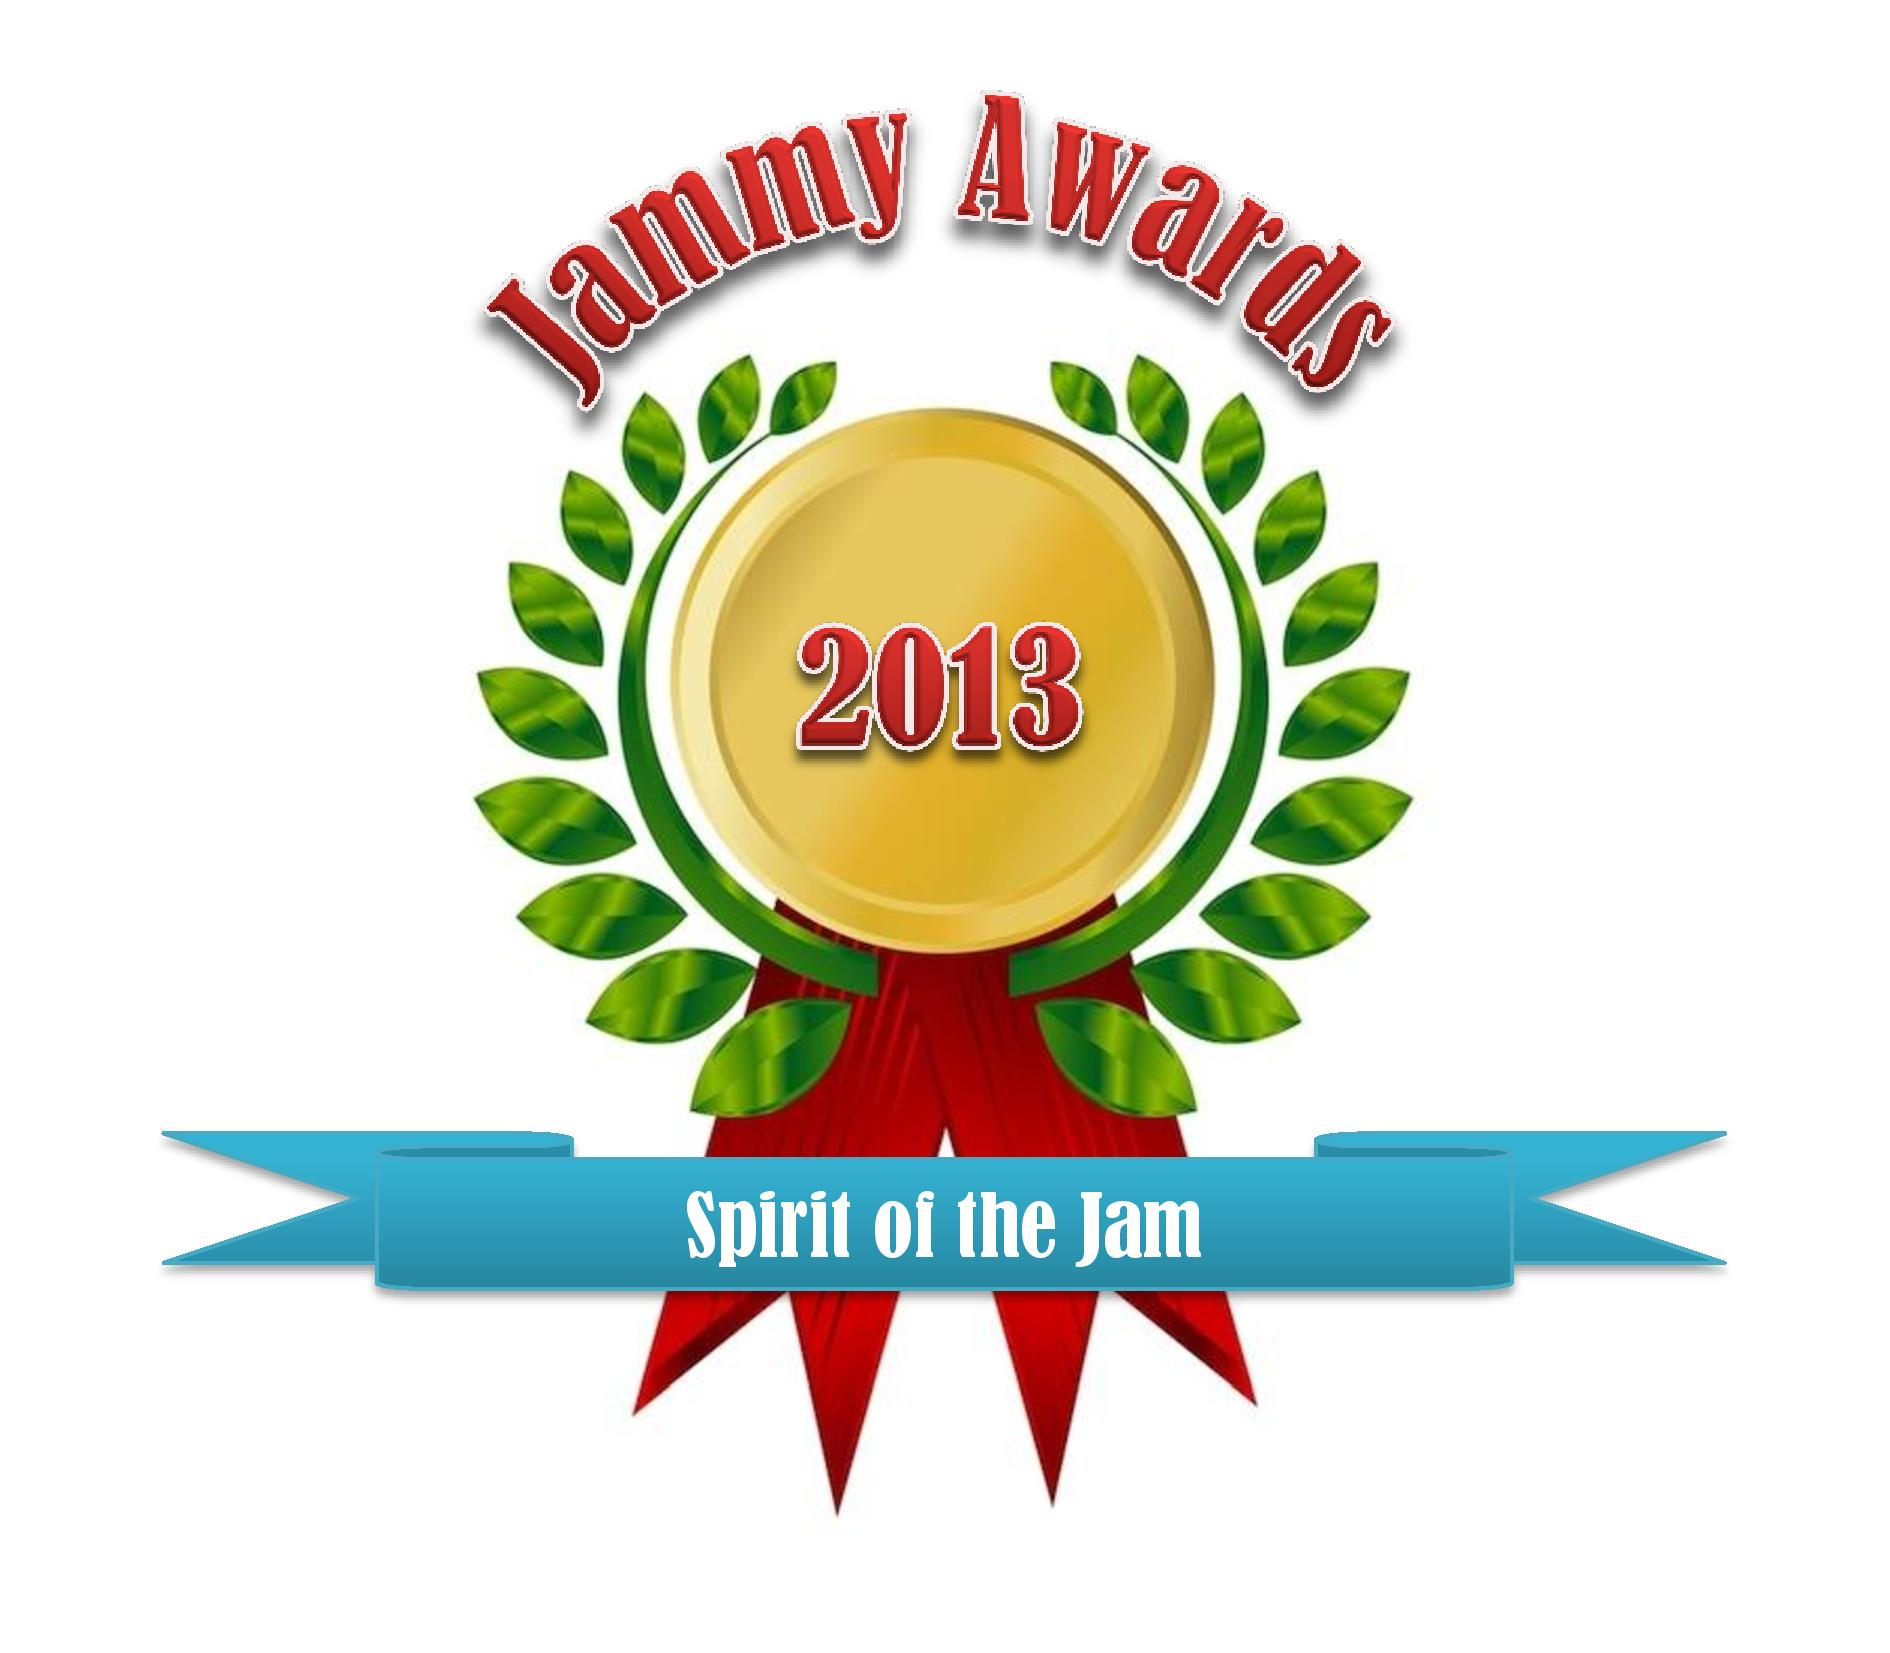 Jammy Award: Spirit of the Jam